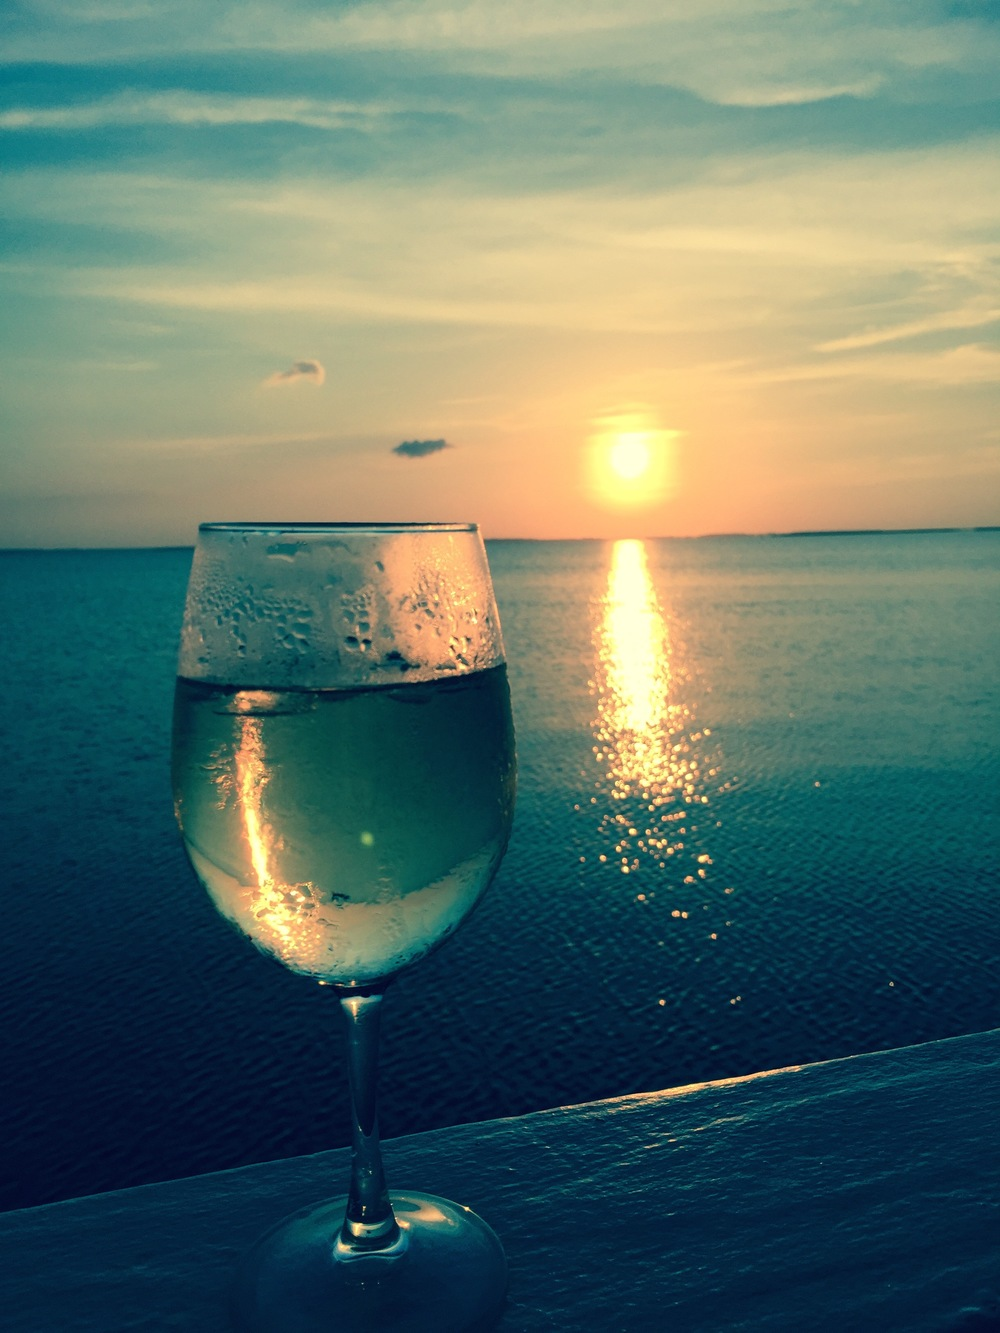 What a great place to have a glass of wine after a long hot hard day!